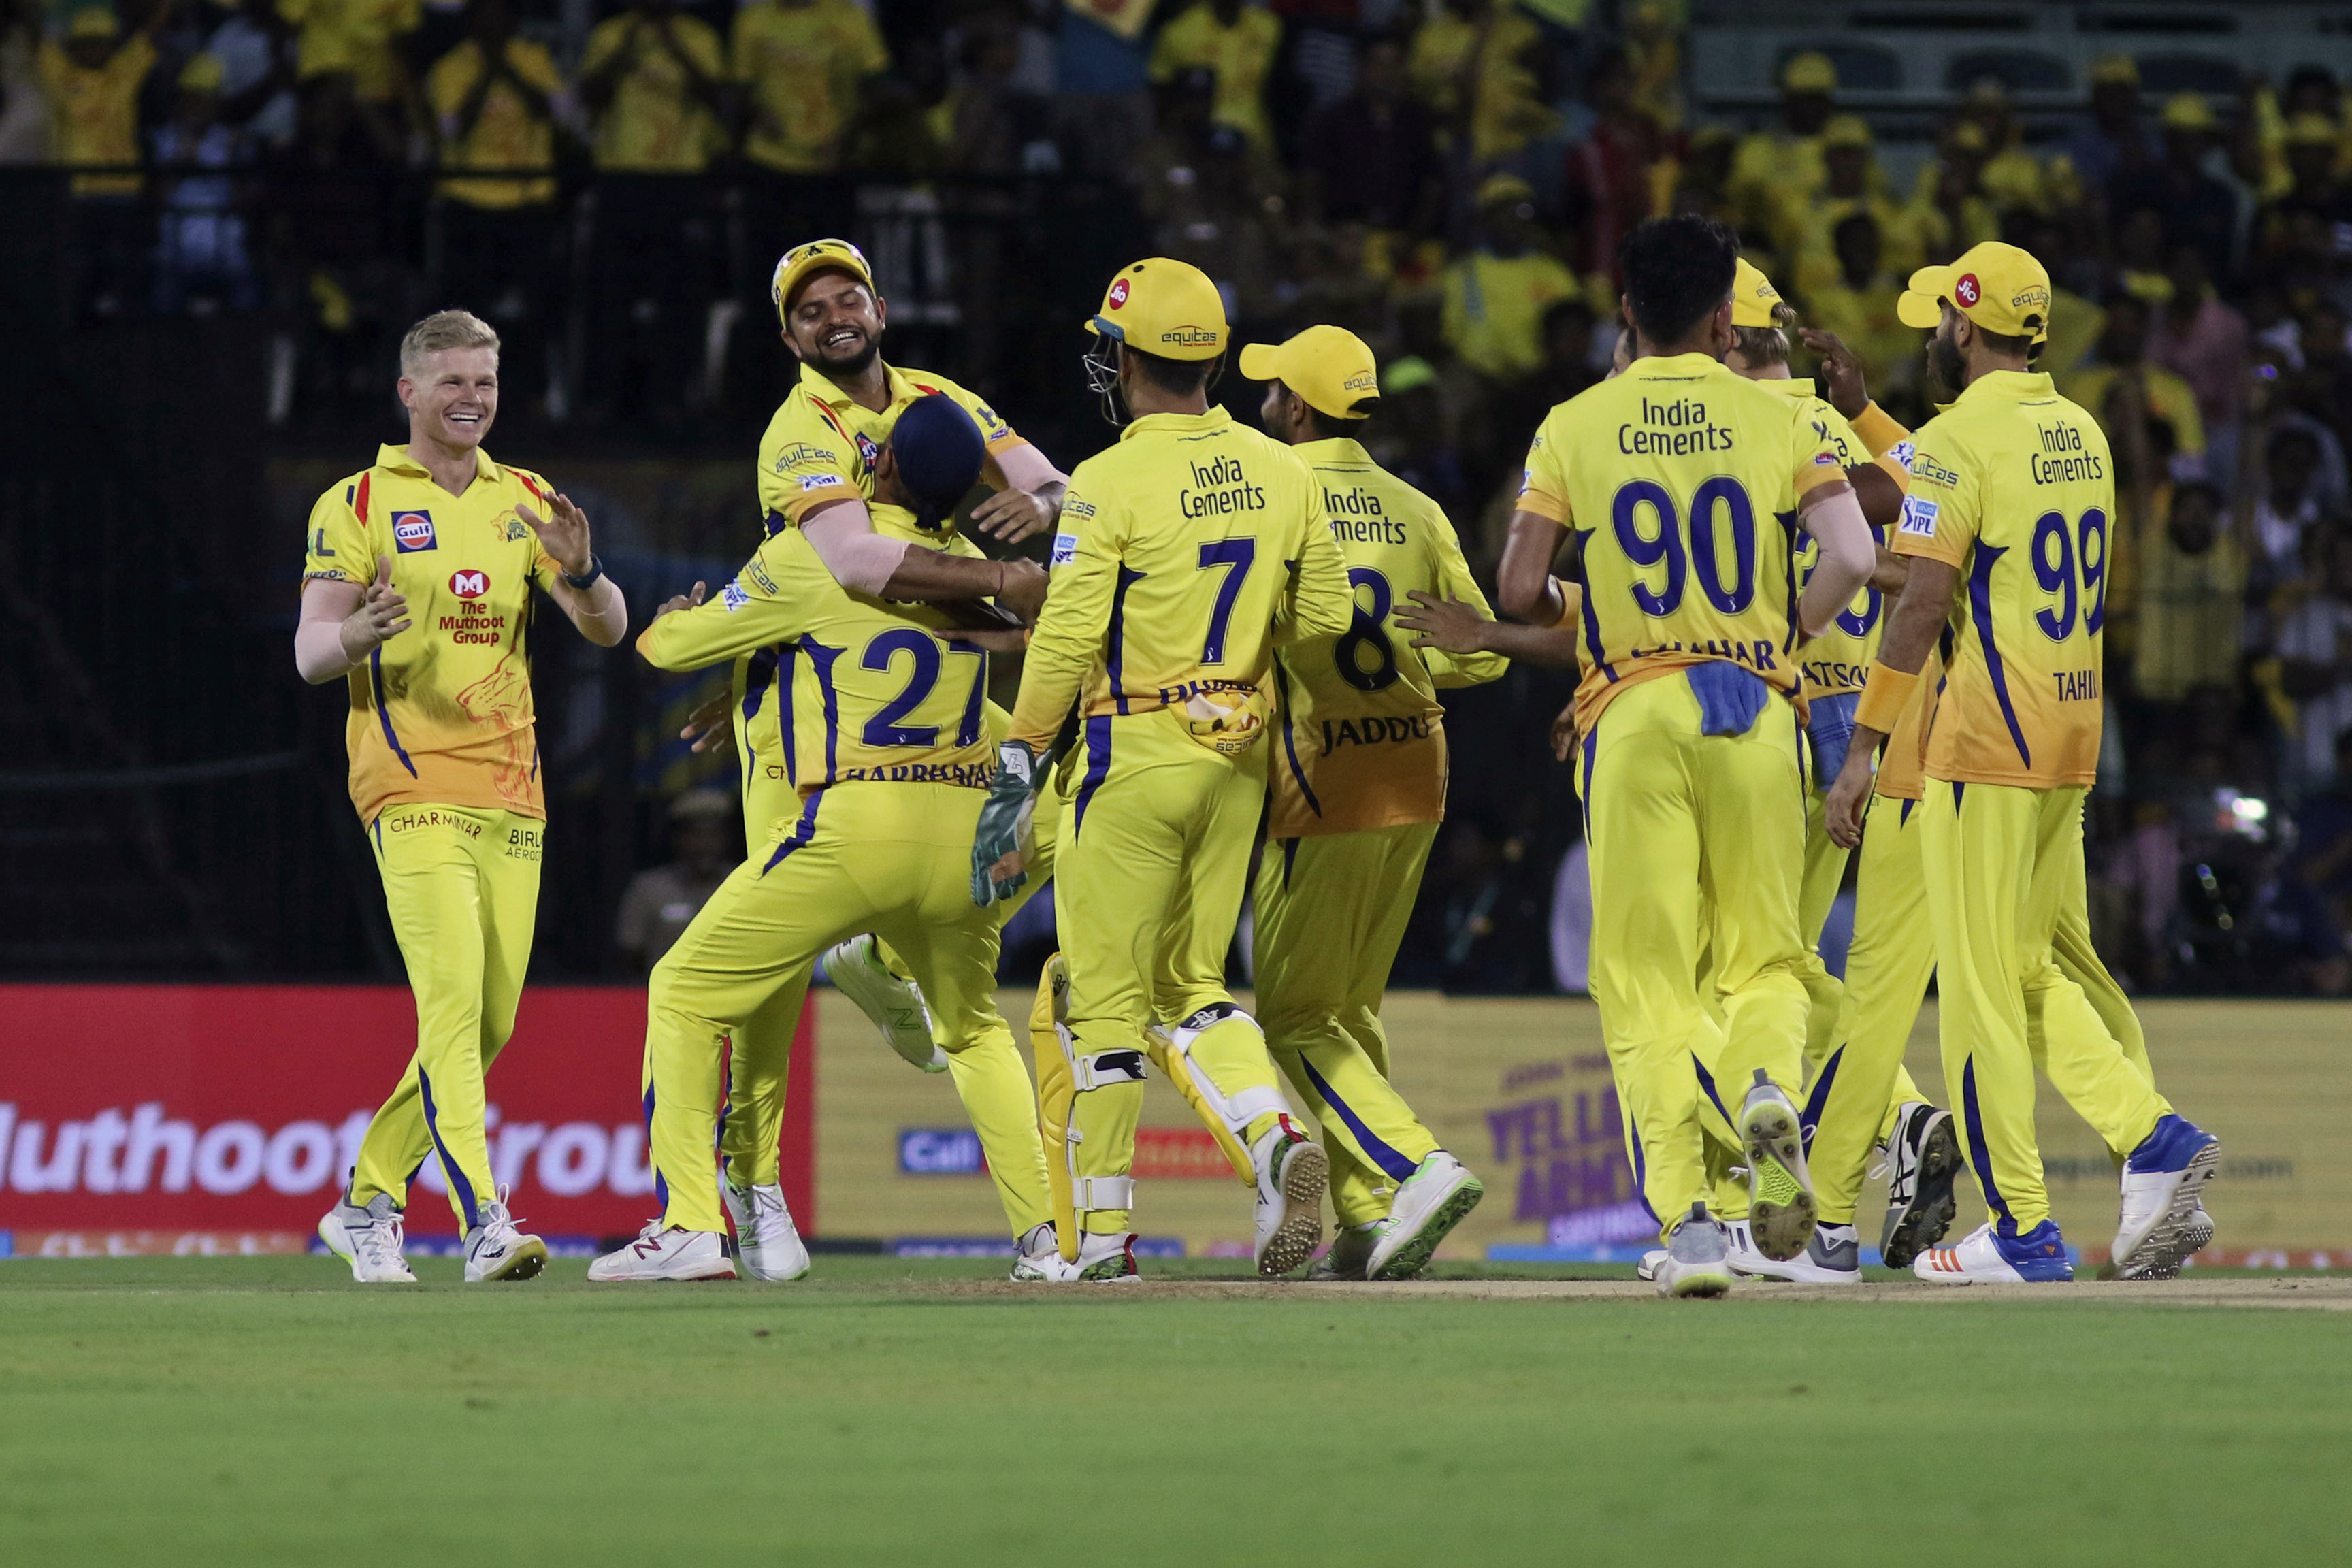 CSK are hoping to retain their IPL title